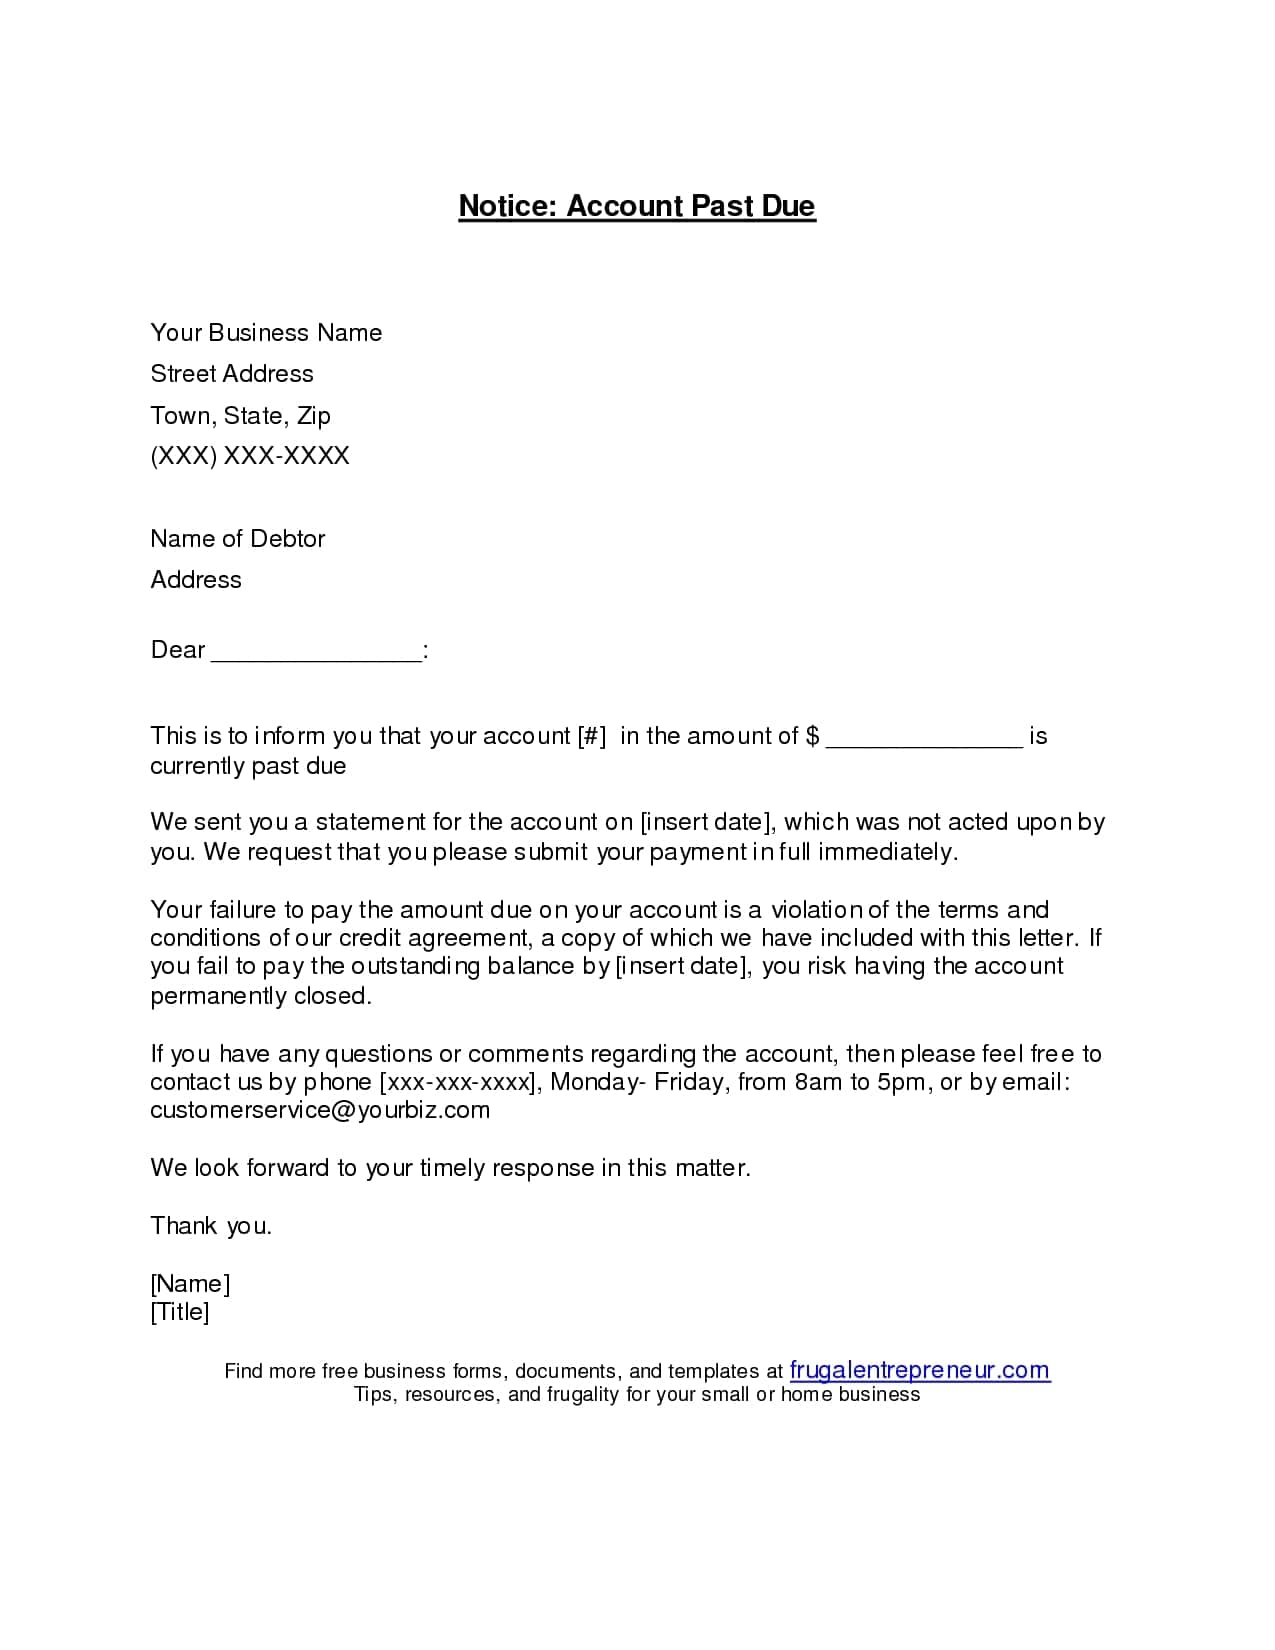 Past Due Invoice Email Template And Past Due Email Template